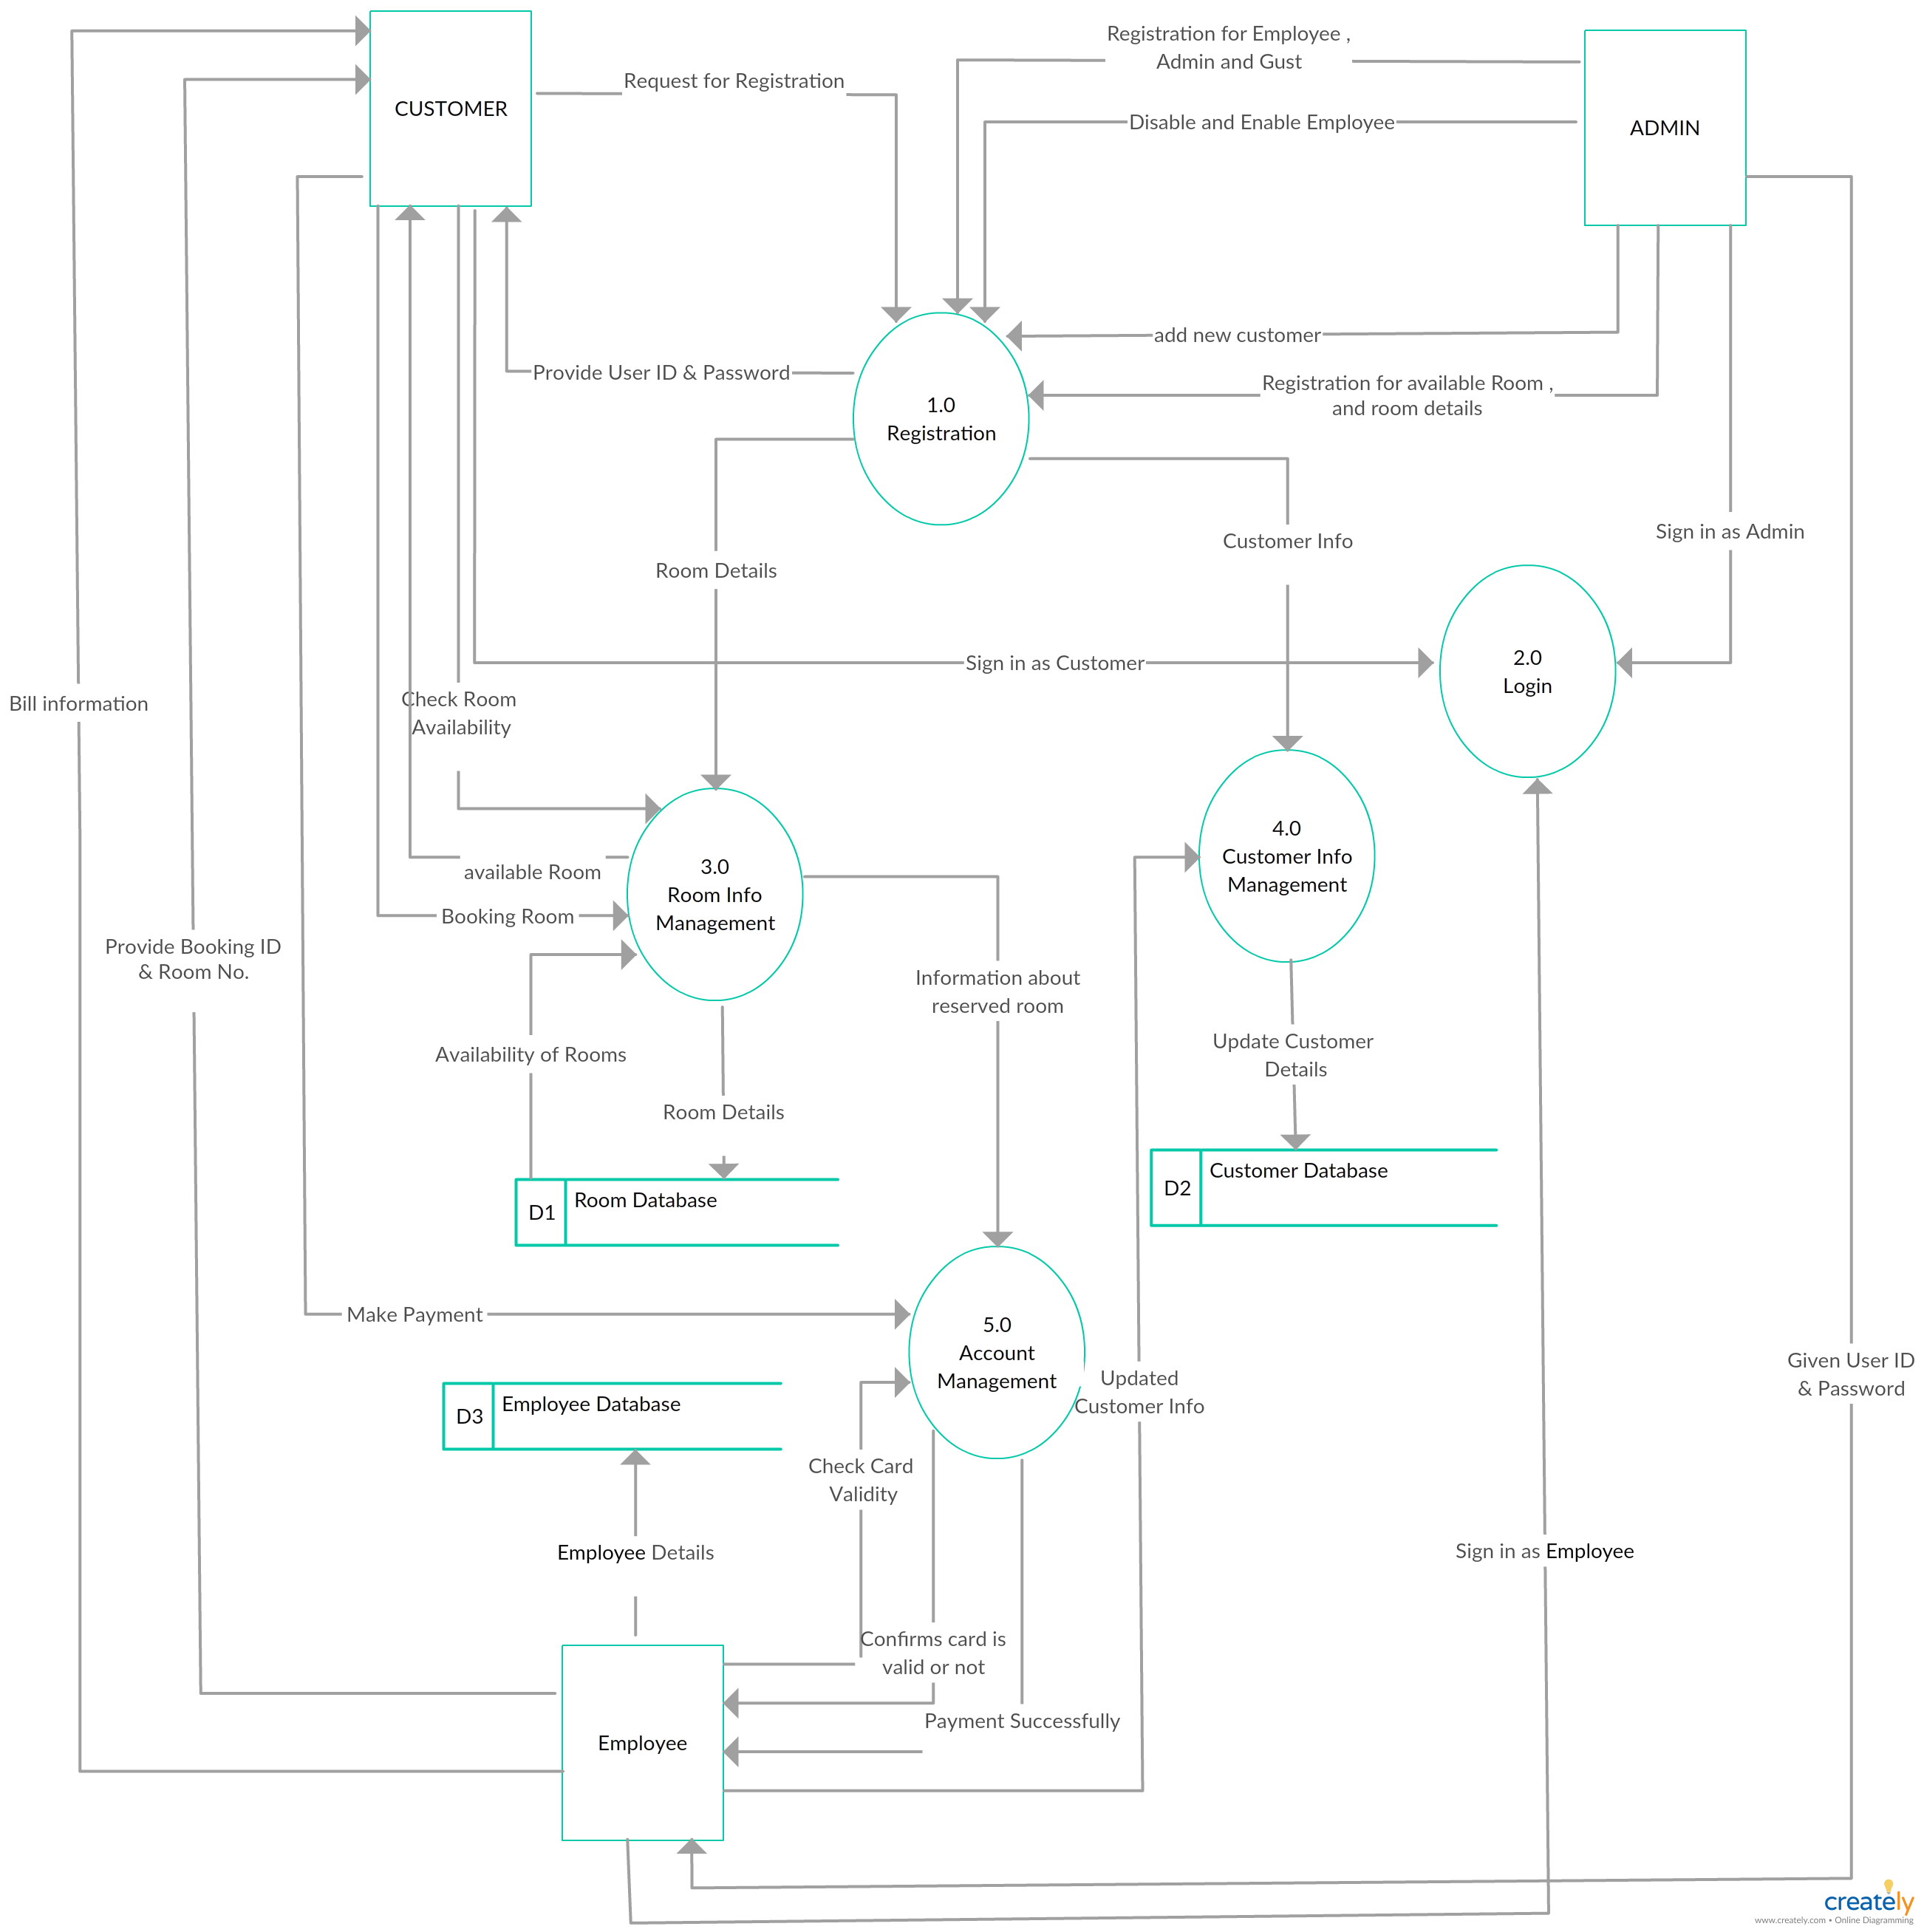 small resolution of dfd for hotel management system level 1 dfd template for a hotel management system you can use this data flow diagram to create level 2 dfd diagrams too